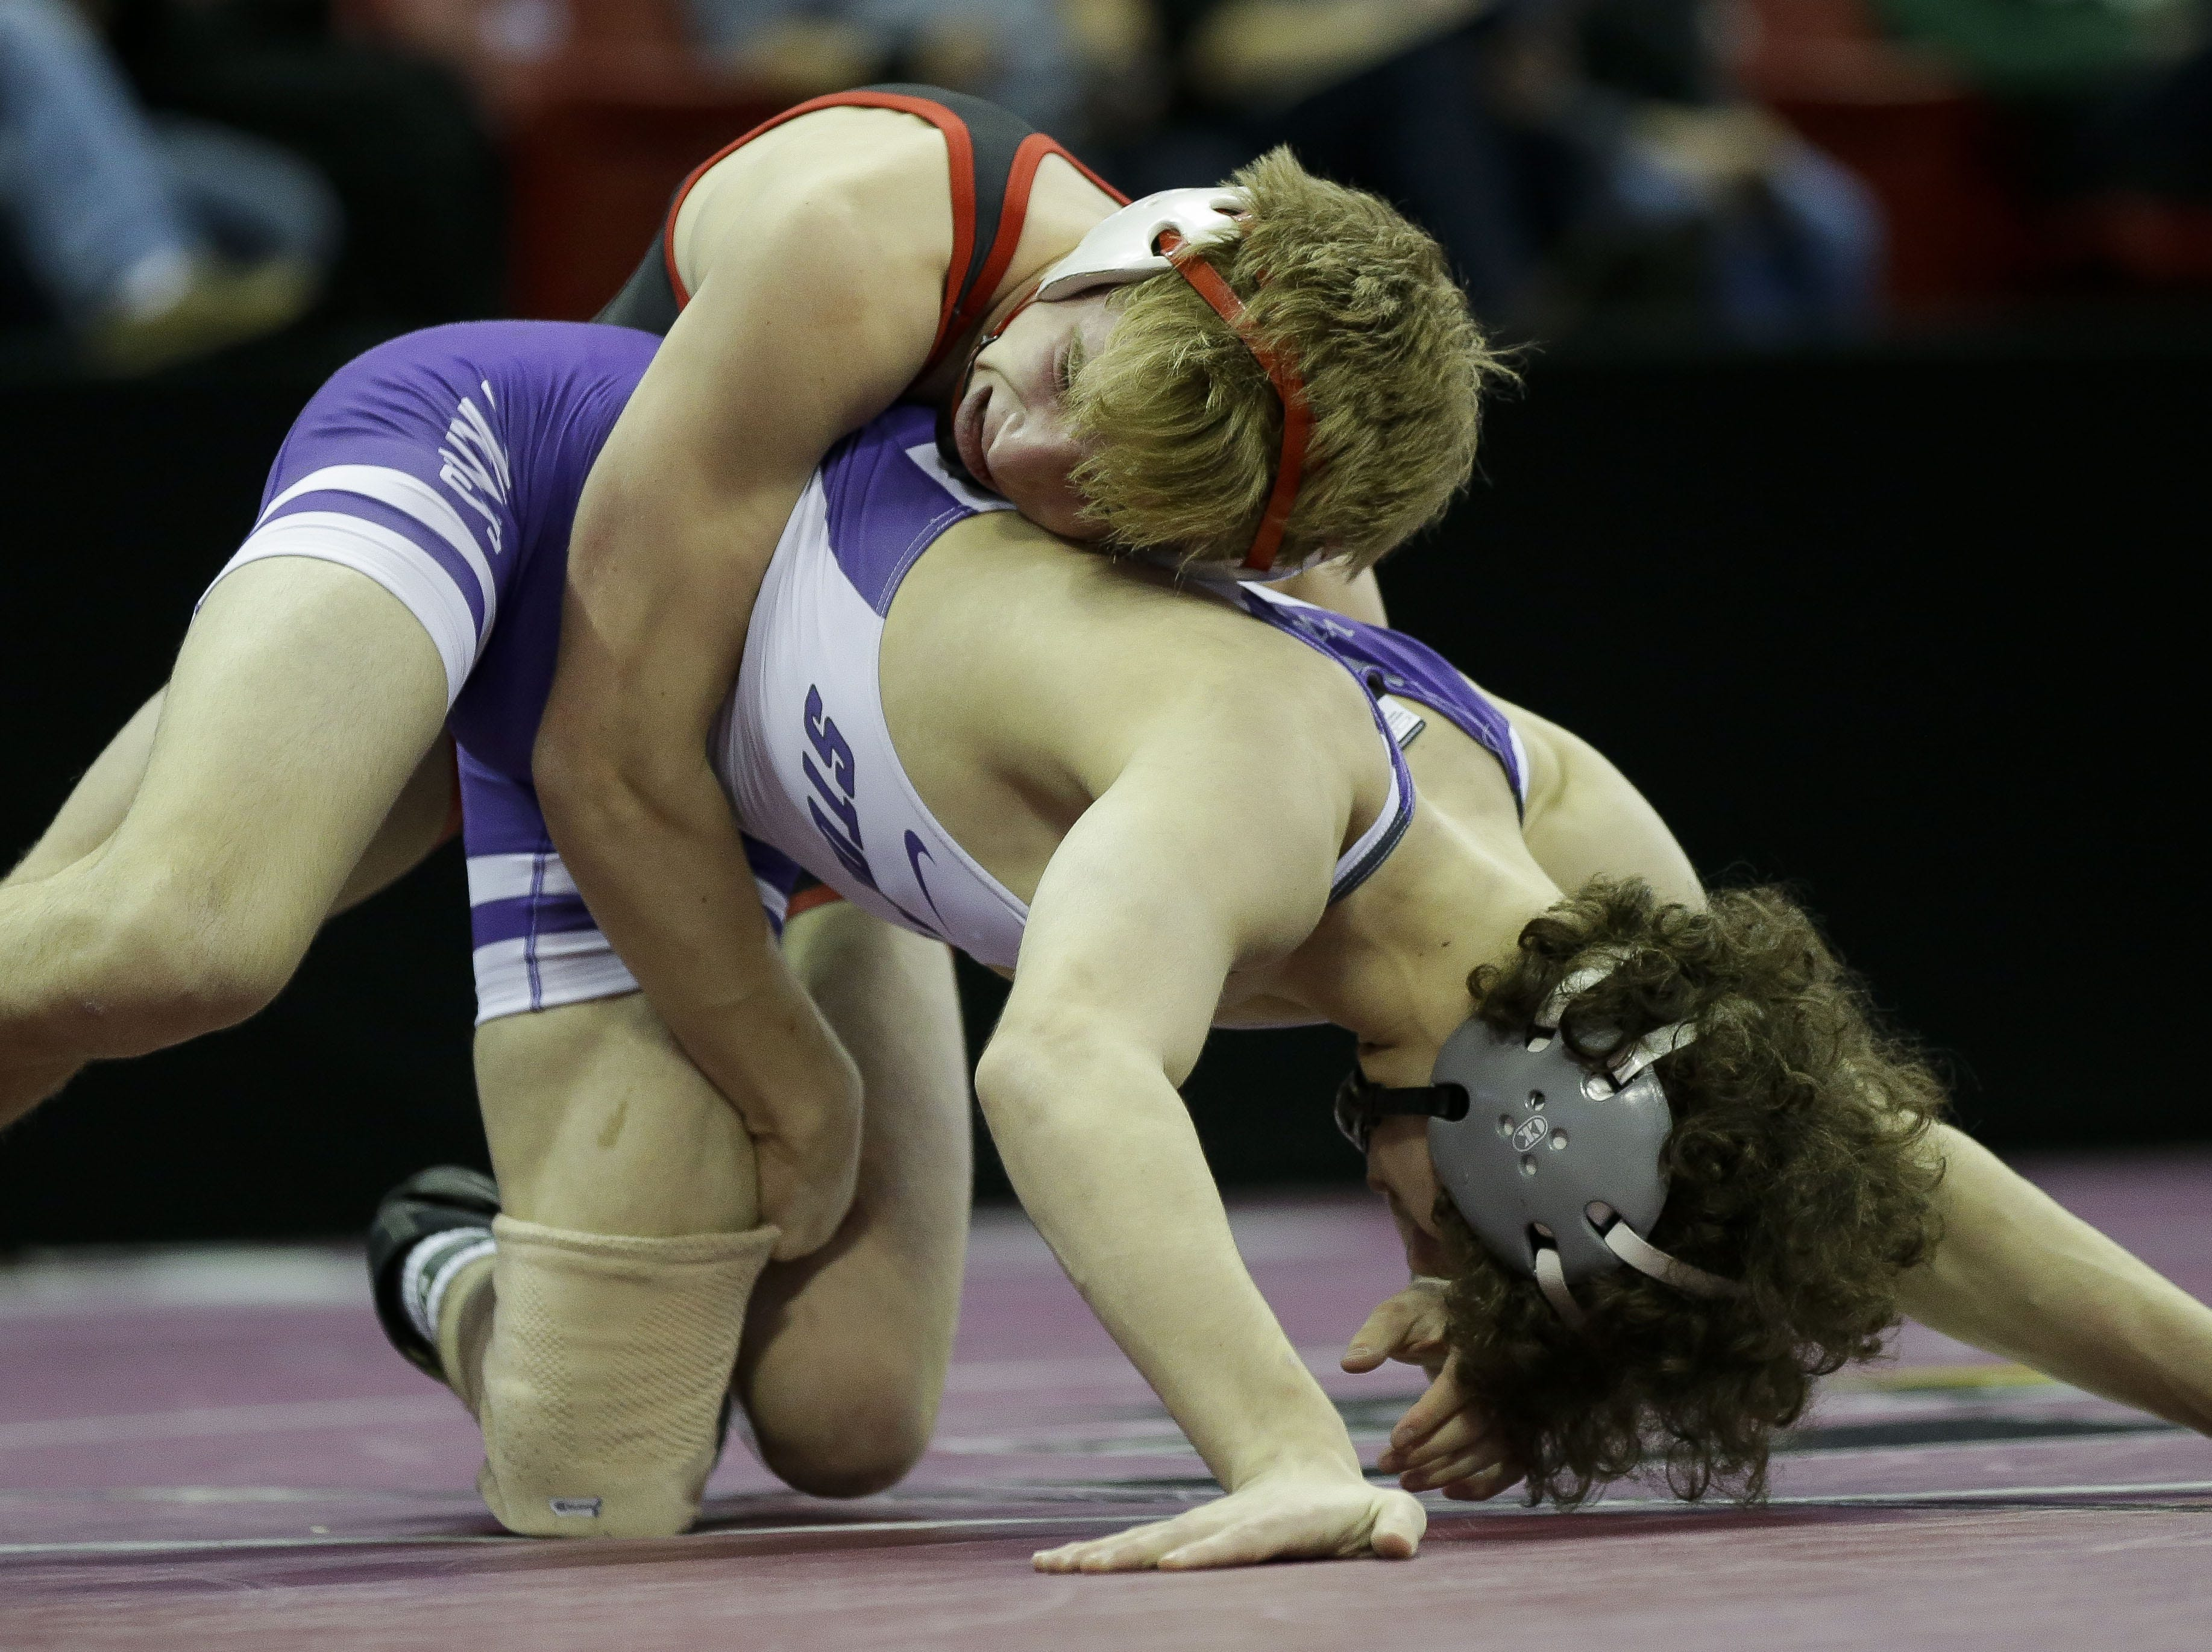 Kimberly's Max Sanderfoot wrestles against Stoughton's Braeden Whitehead in a Division 1 132-pound preliminary match during the WIAA state wrestling tournament on Thursday, February 21, 2019, at the Kohl Center in Madison, Wis. Tork Mason/USA TODAY NETWORK-Wisconsin